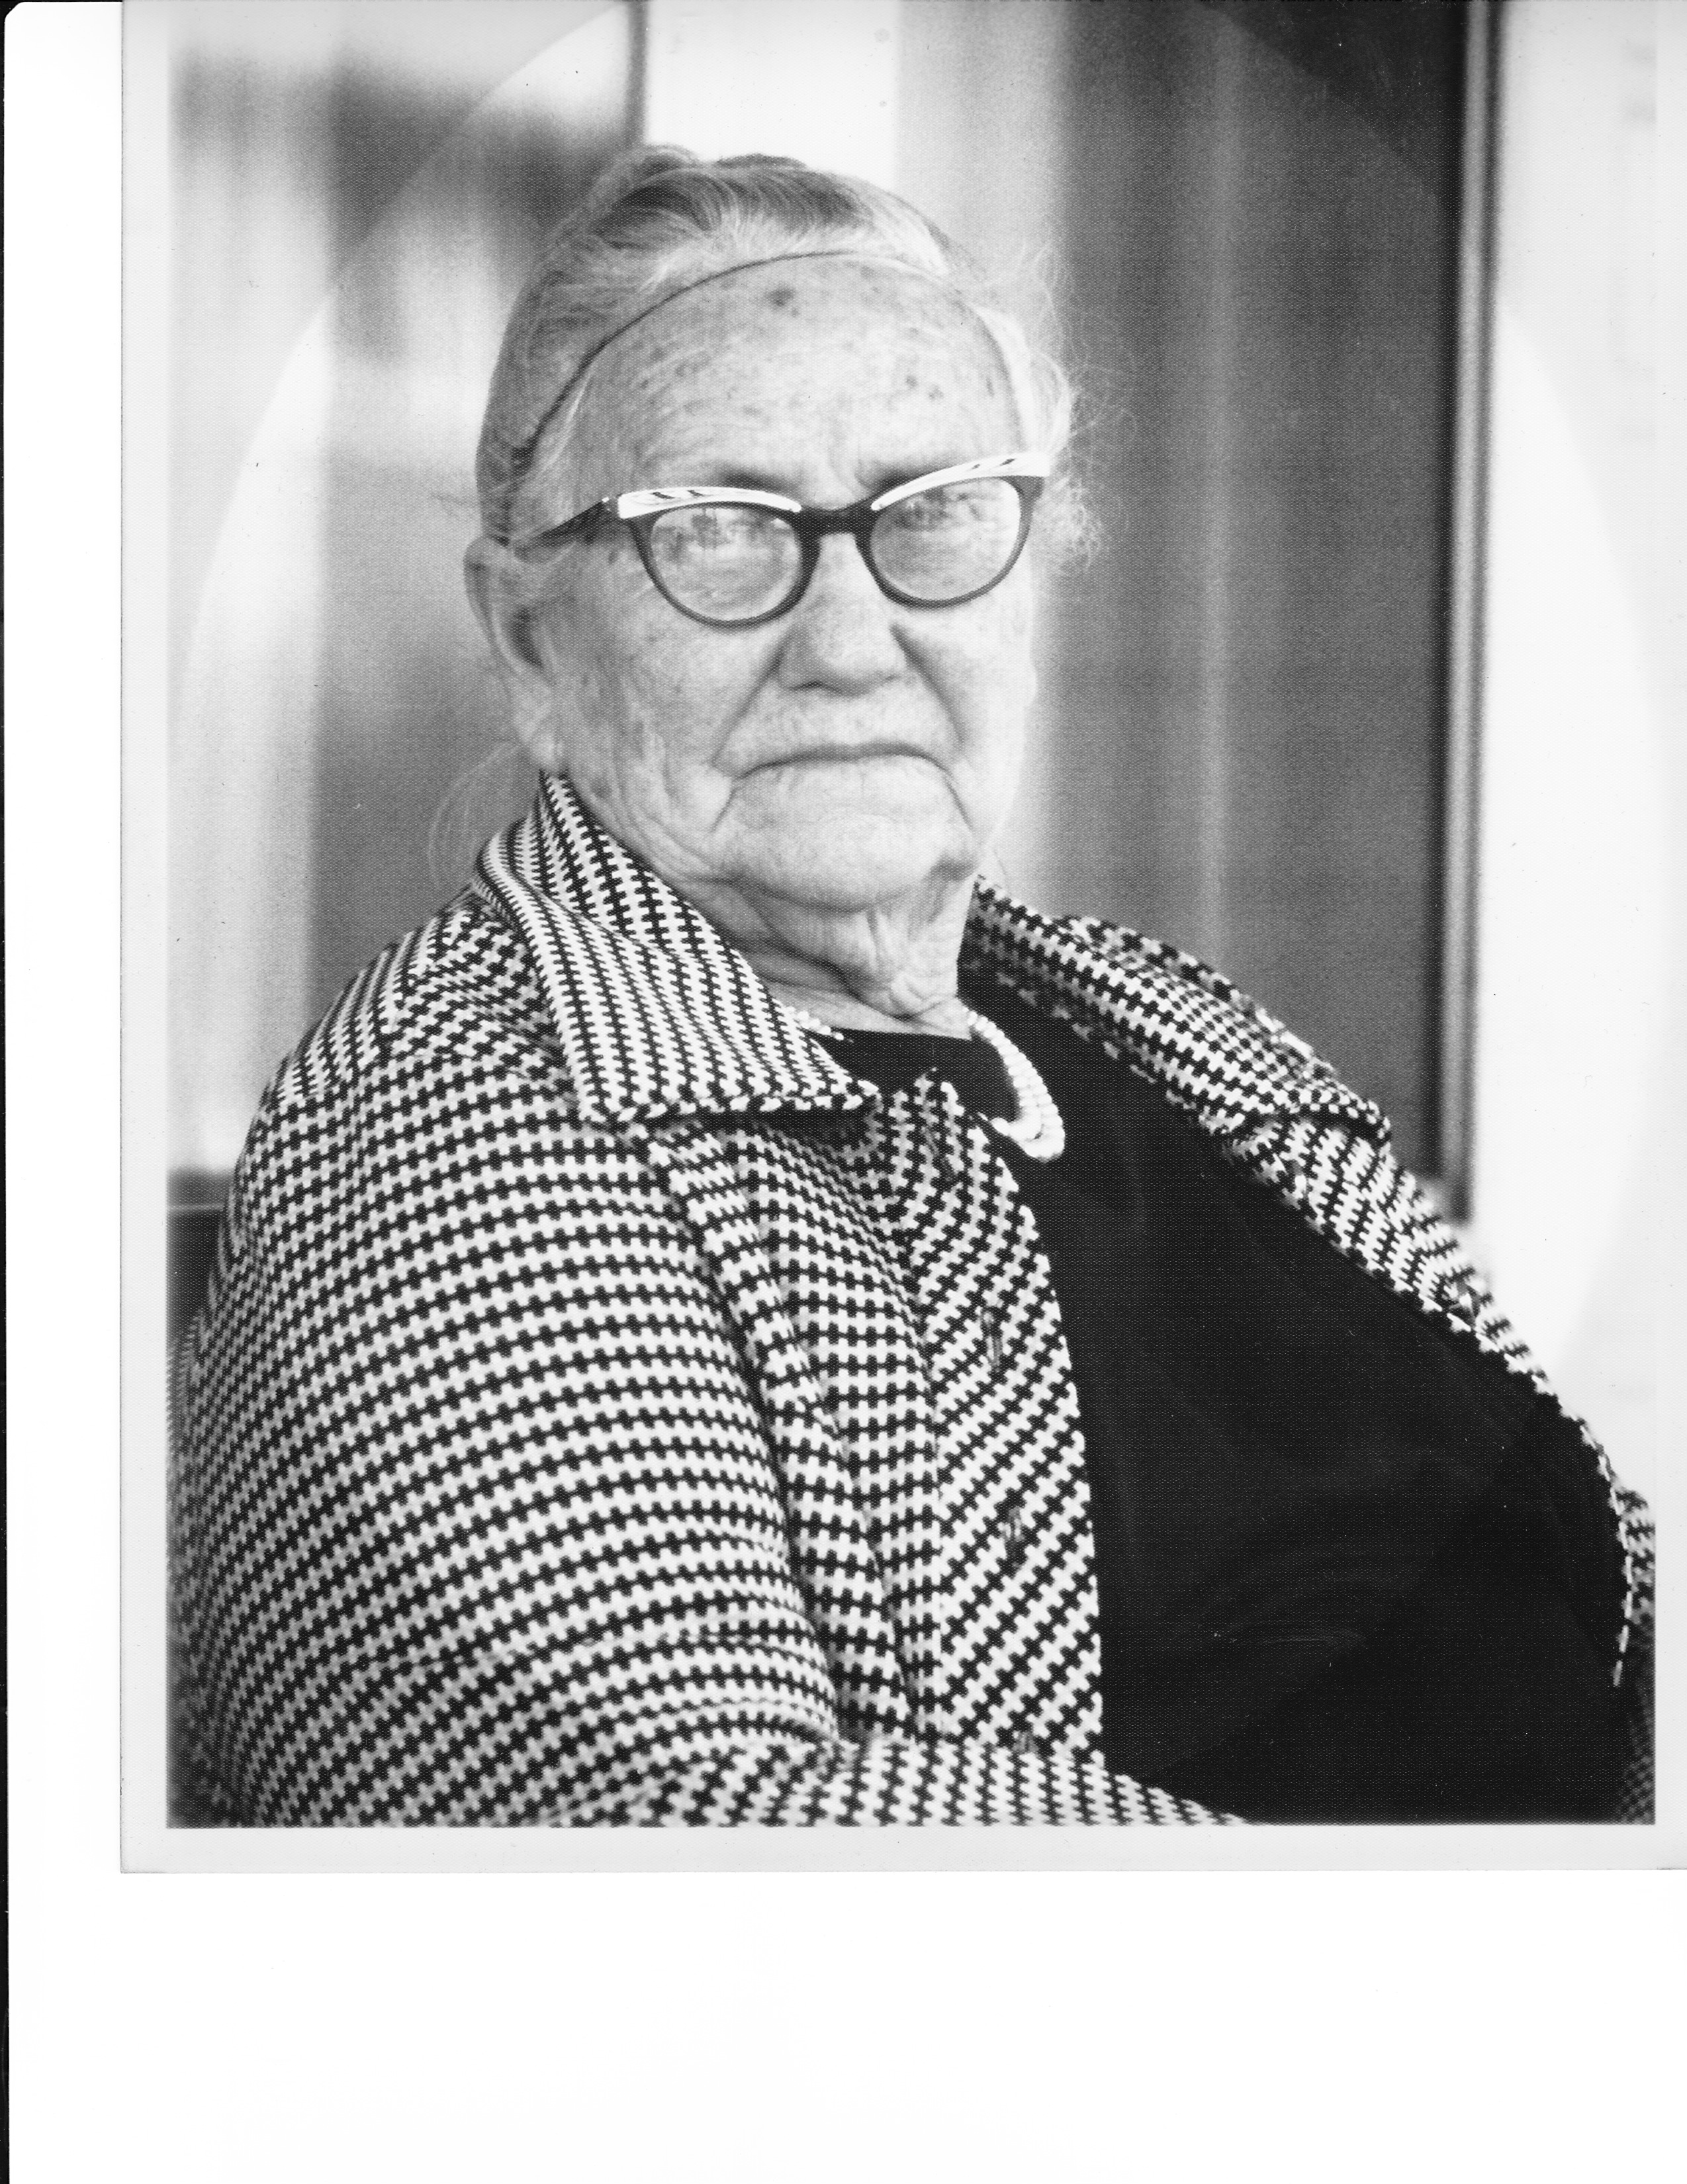 Mamaw Ora Mae Morris. I loved that woman. She smelled like biscuits.